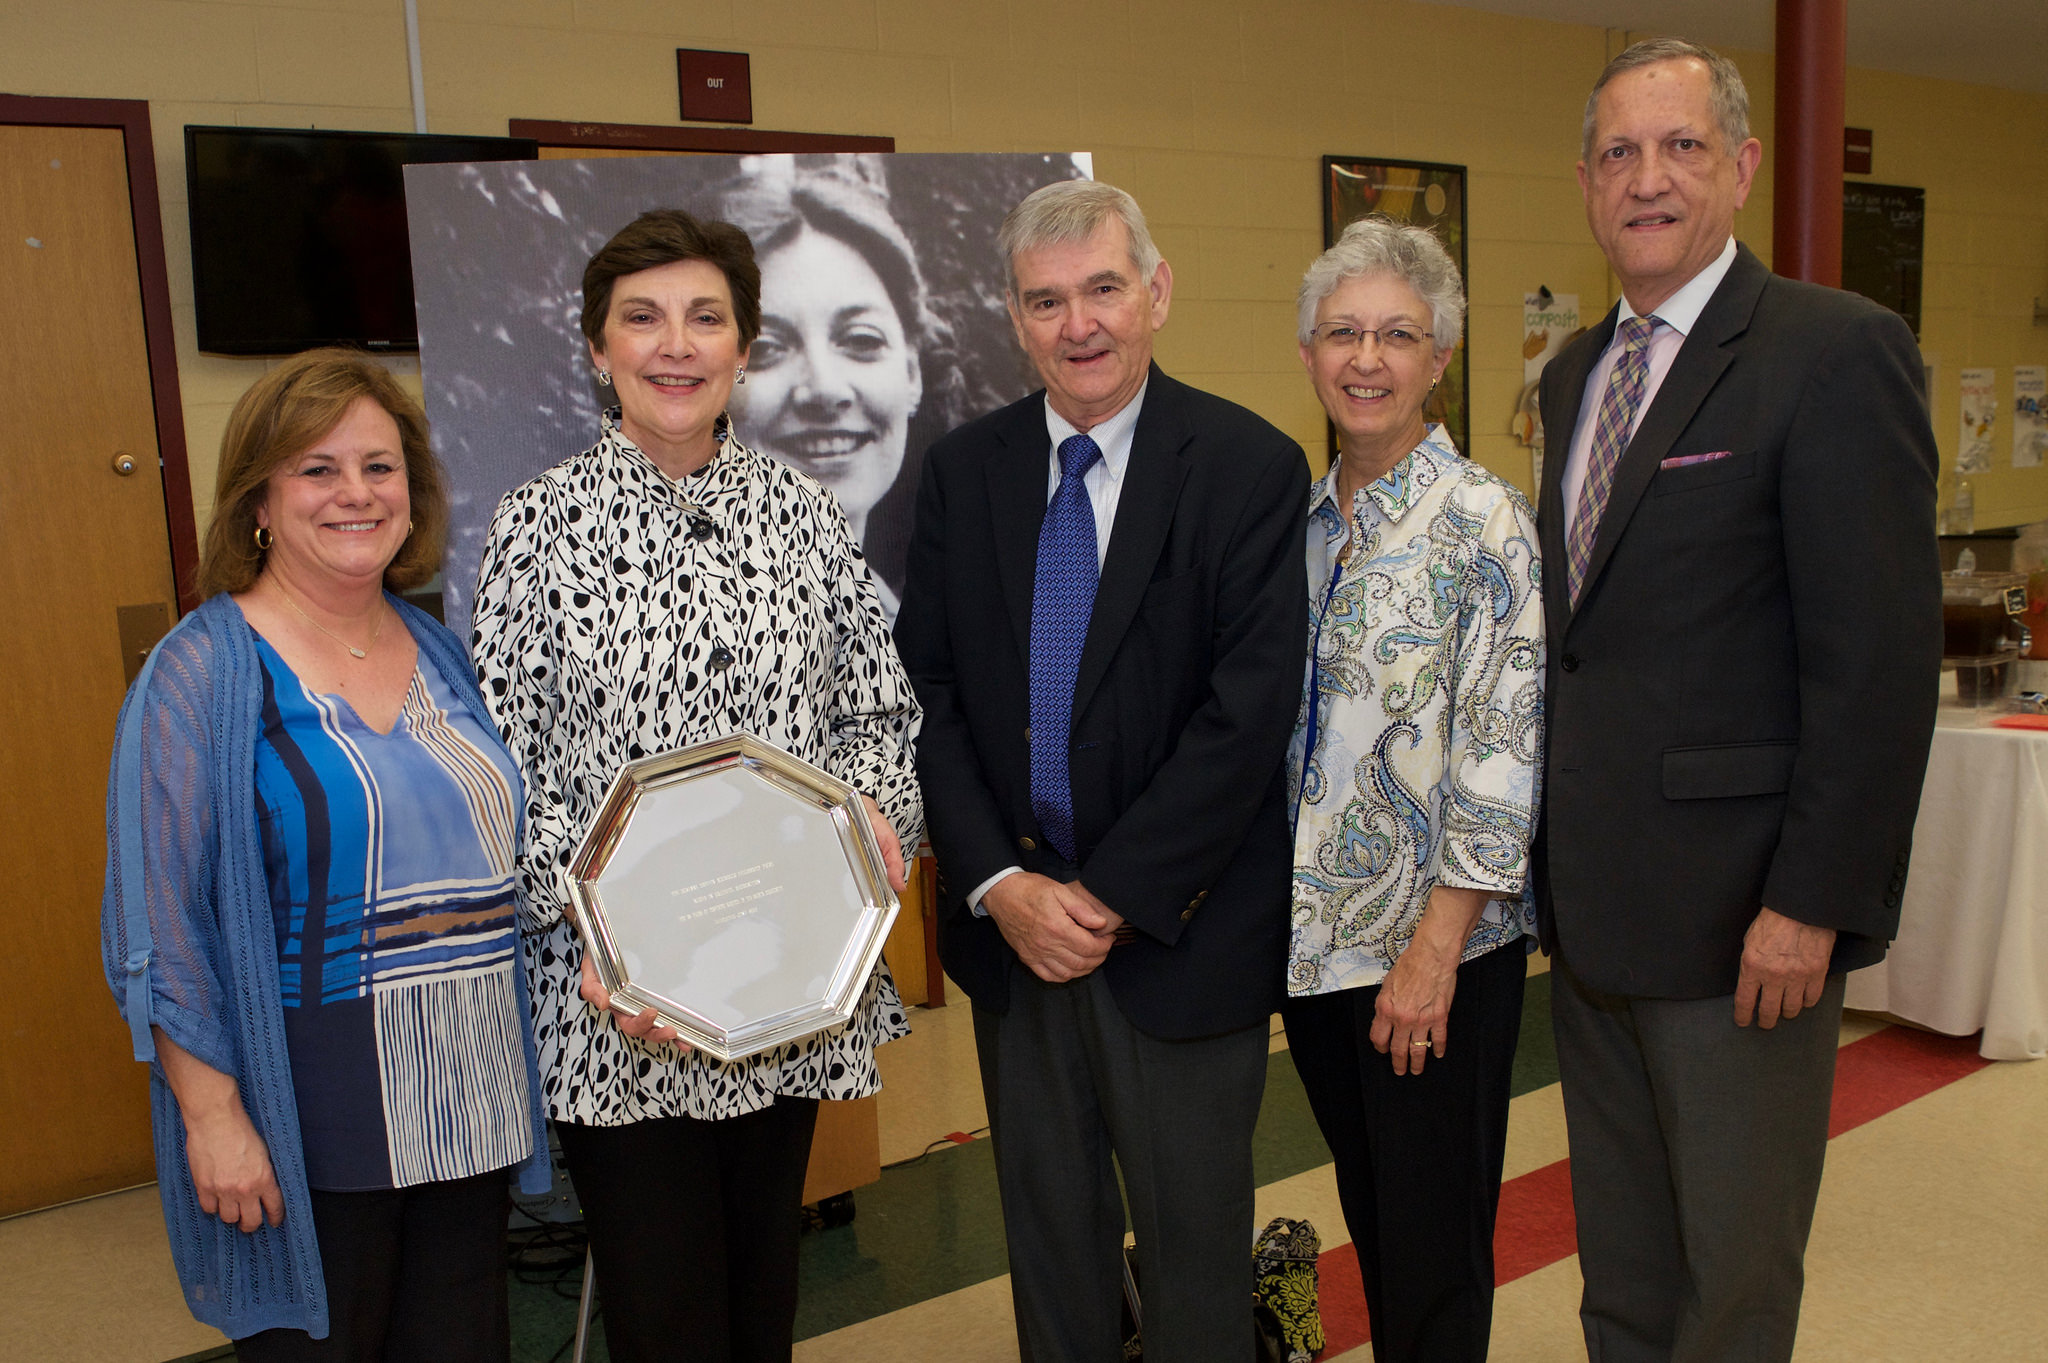 Adrienne Pakis Gillon [spouse of Bill Gillon (TN, '14)], Suzanne Nuckolls, Carl and Marilyn Shedlock, and Randy Nuckolls